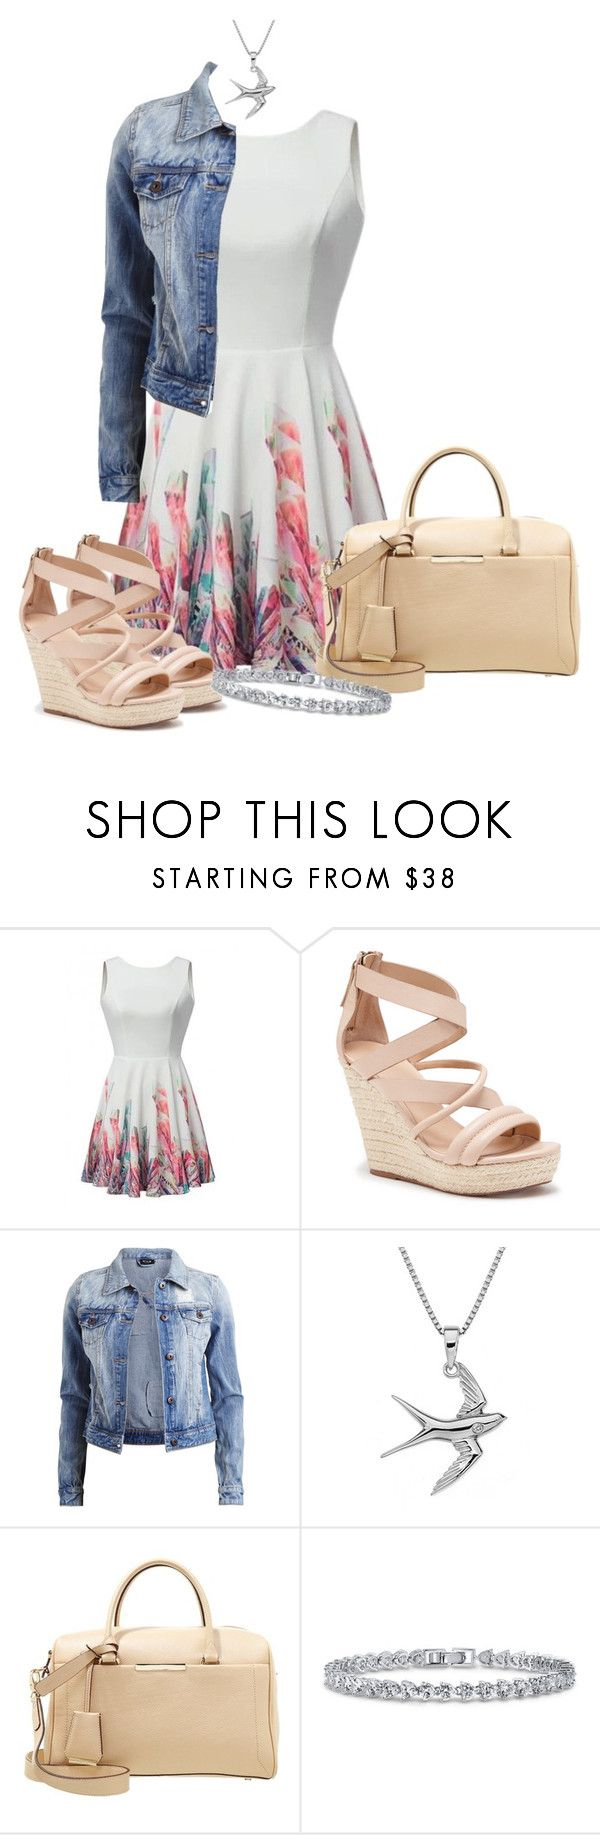 """""""Spring Wedge Sandals Outfit"""" by kelpclock ❤ liked on Polyvore featuring Joe's Jeans, VILA, Clarks and BERRICLE"""